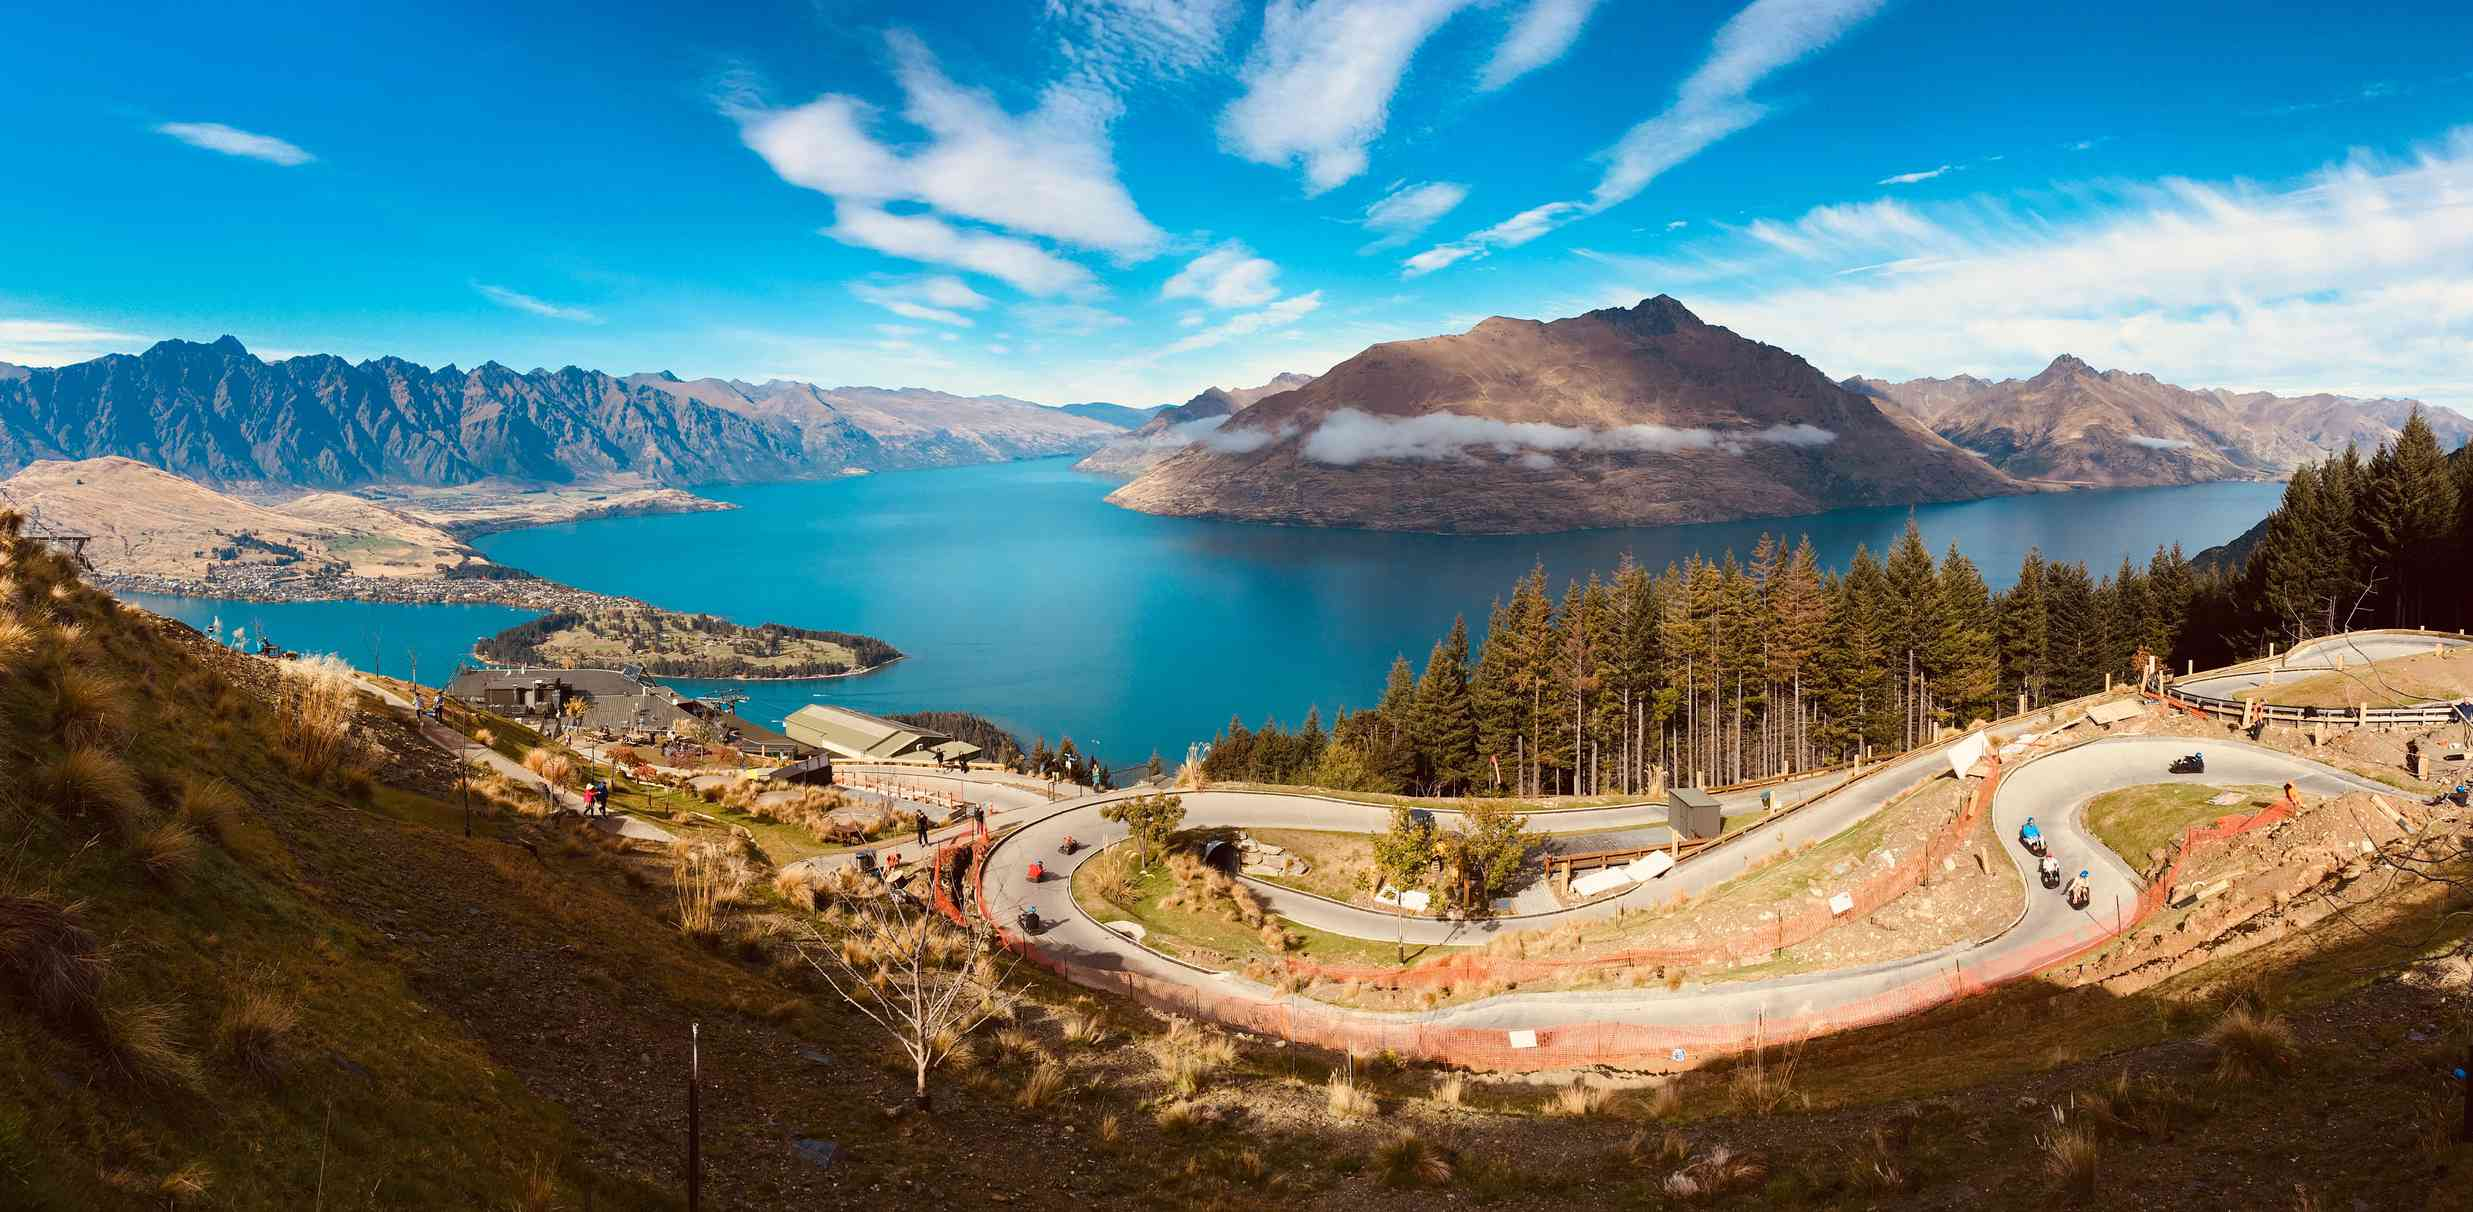 luge track winding down a hill with lake, mountains and blue sky in background